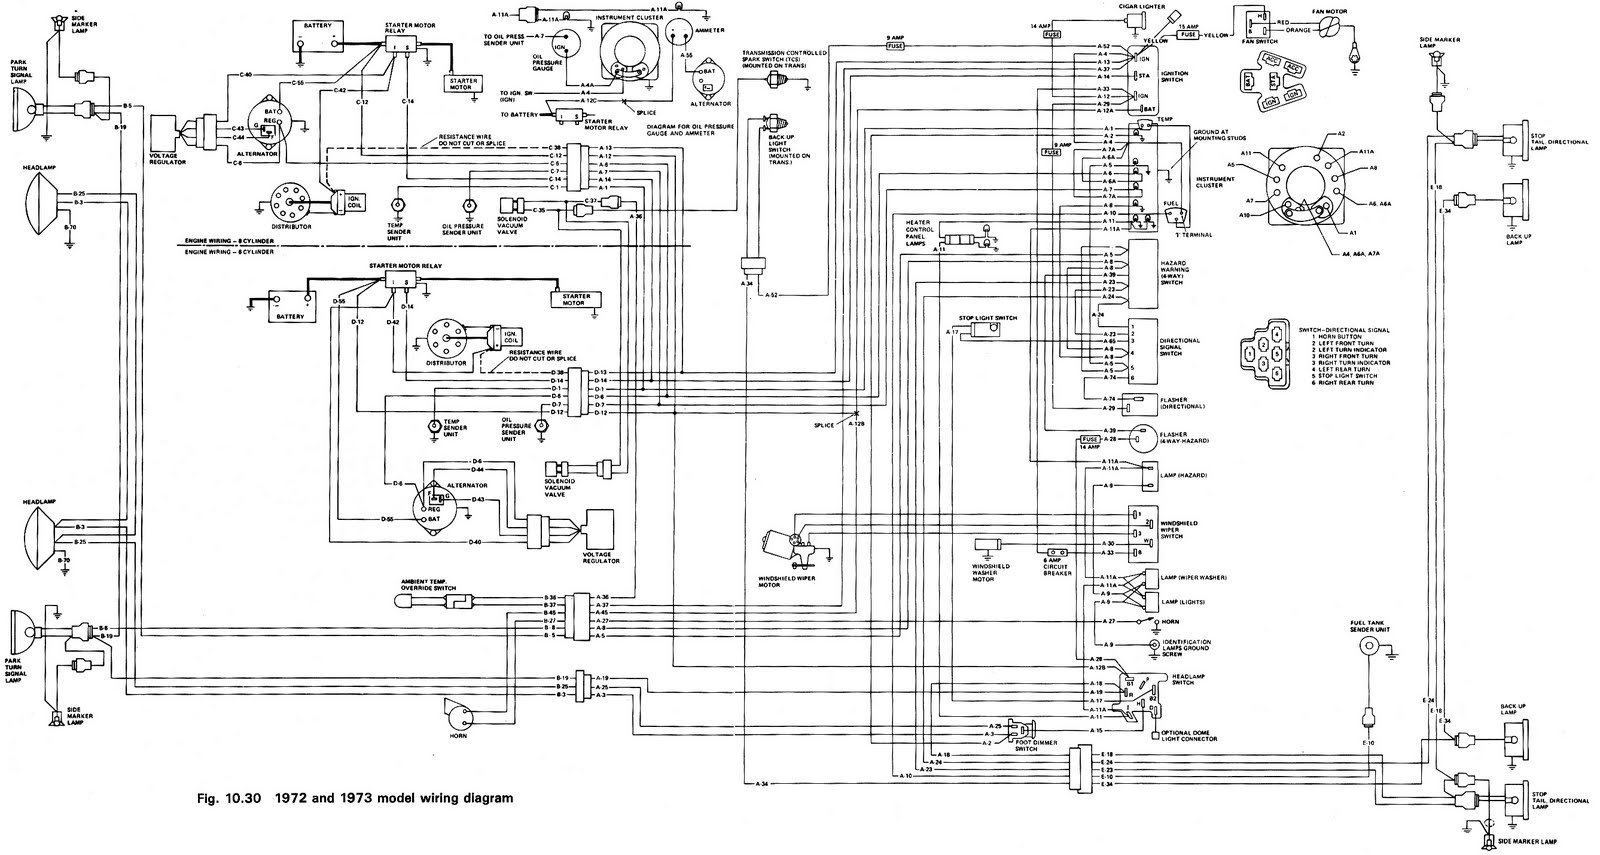 Instrument Wiring Diagram Jeep Cj7